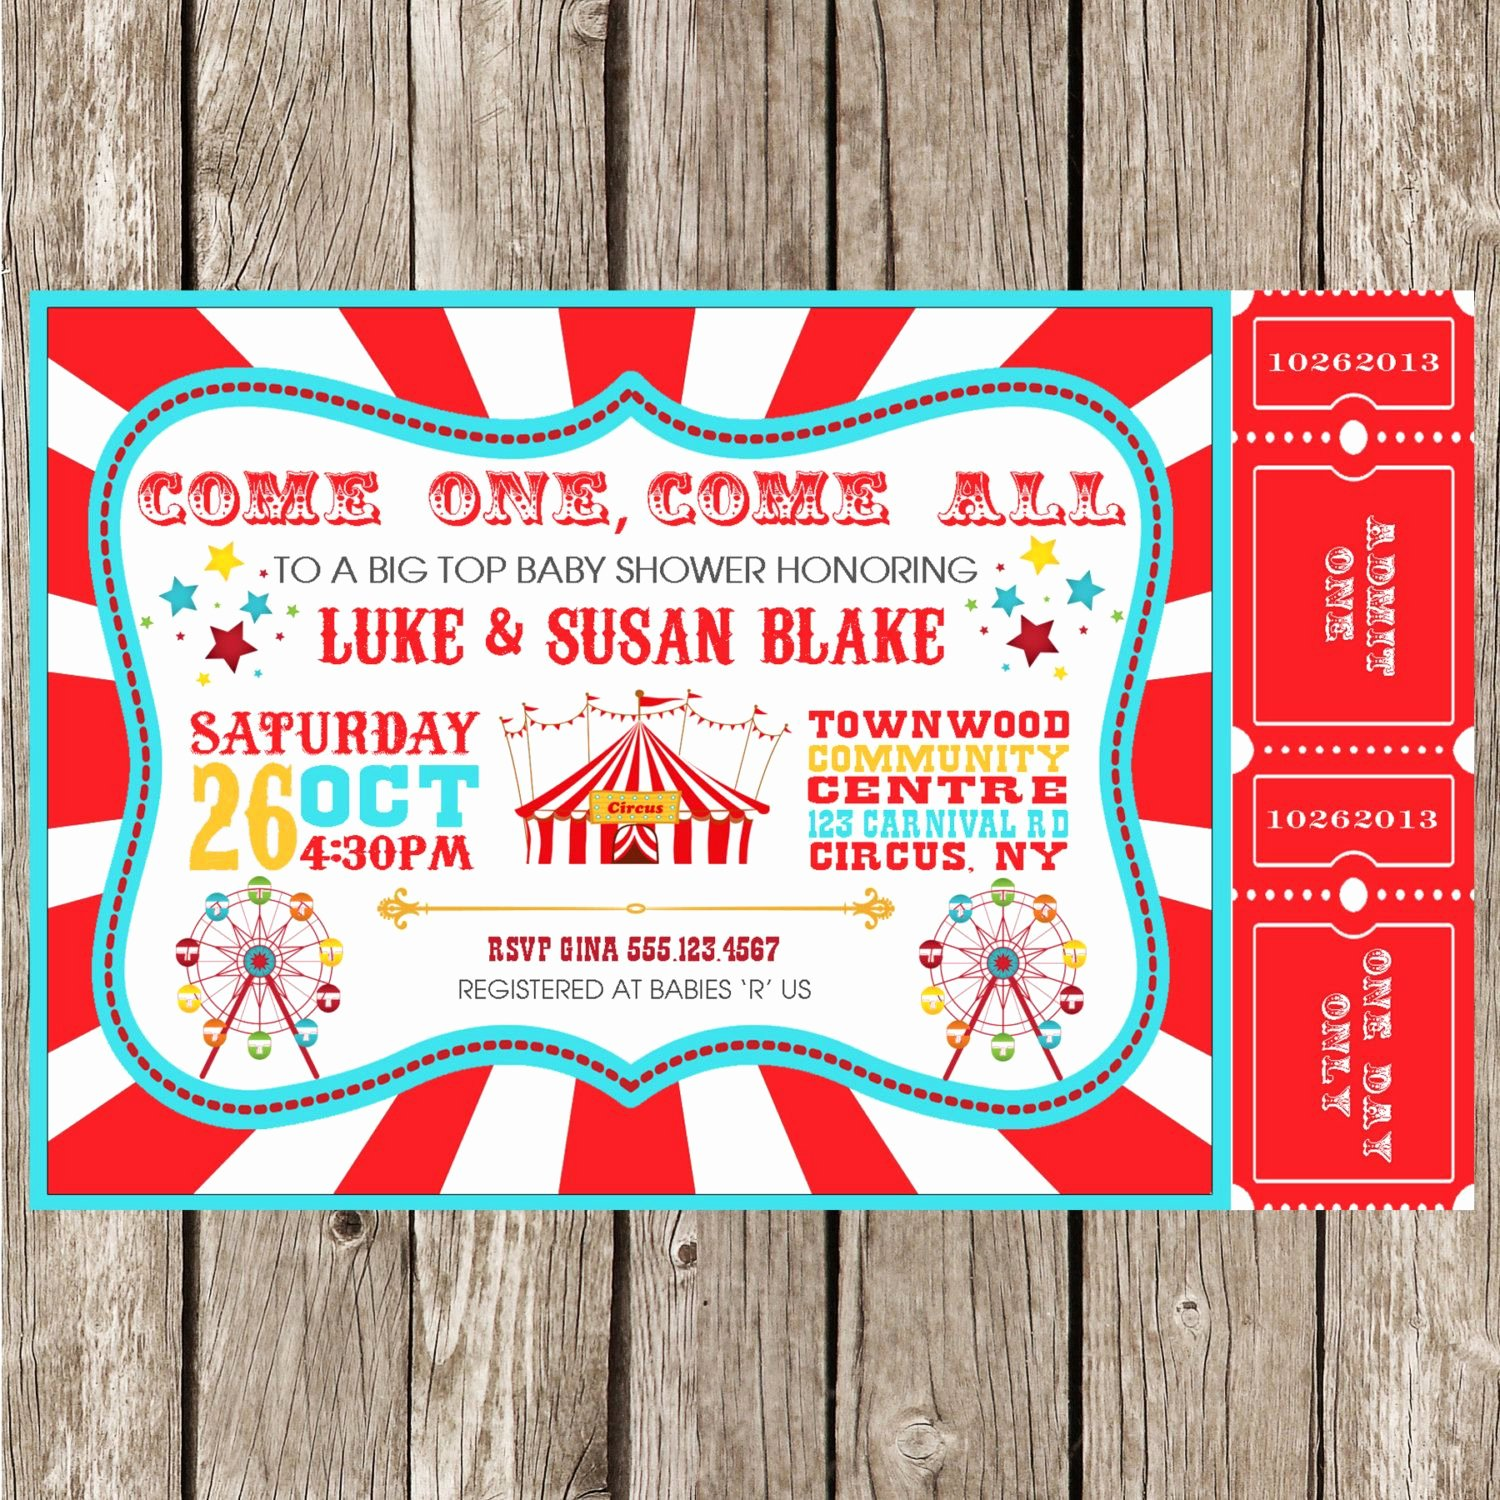 Carnival theme Party Invitations New Vintage Circus Carnival Invitation Baby Shower